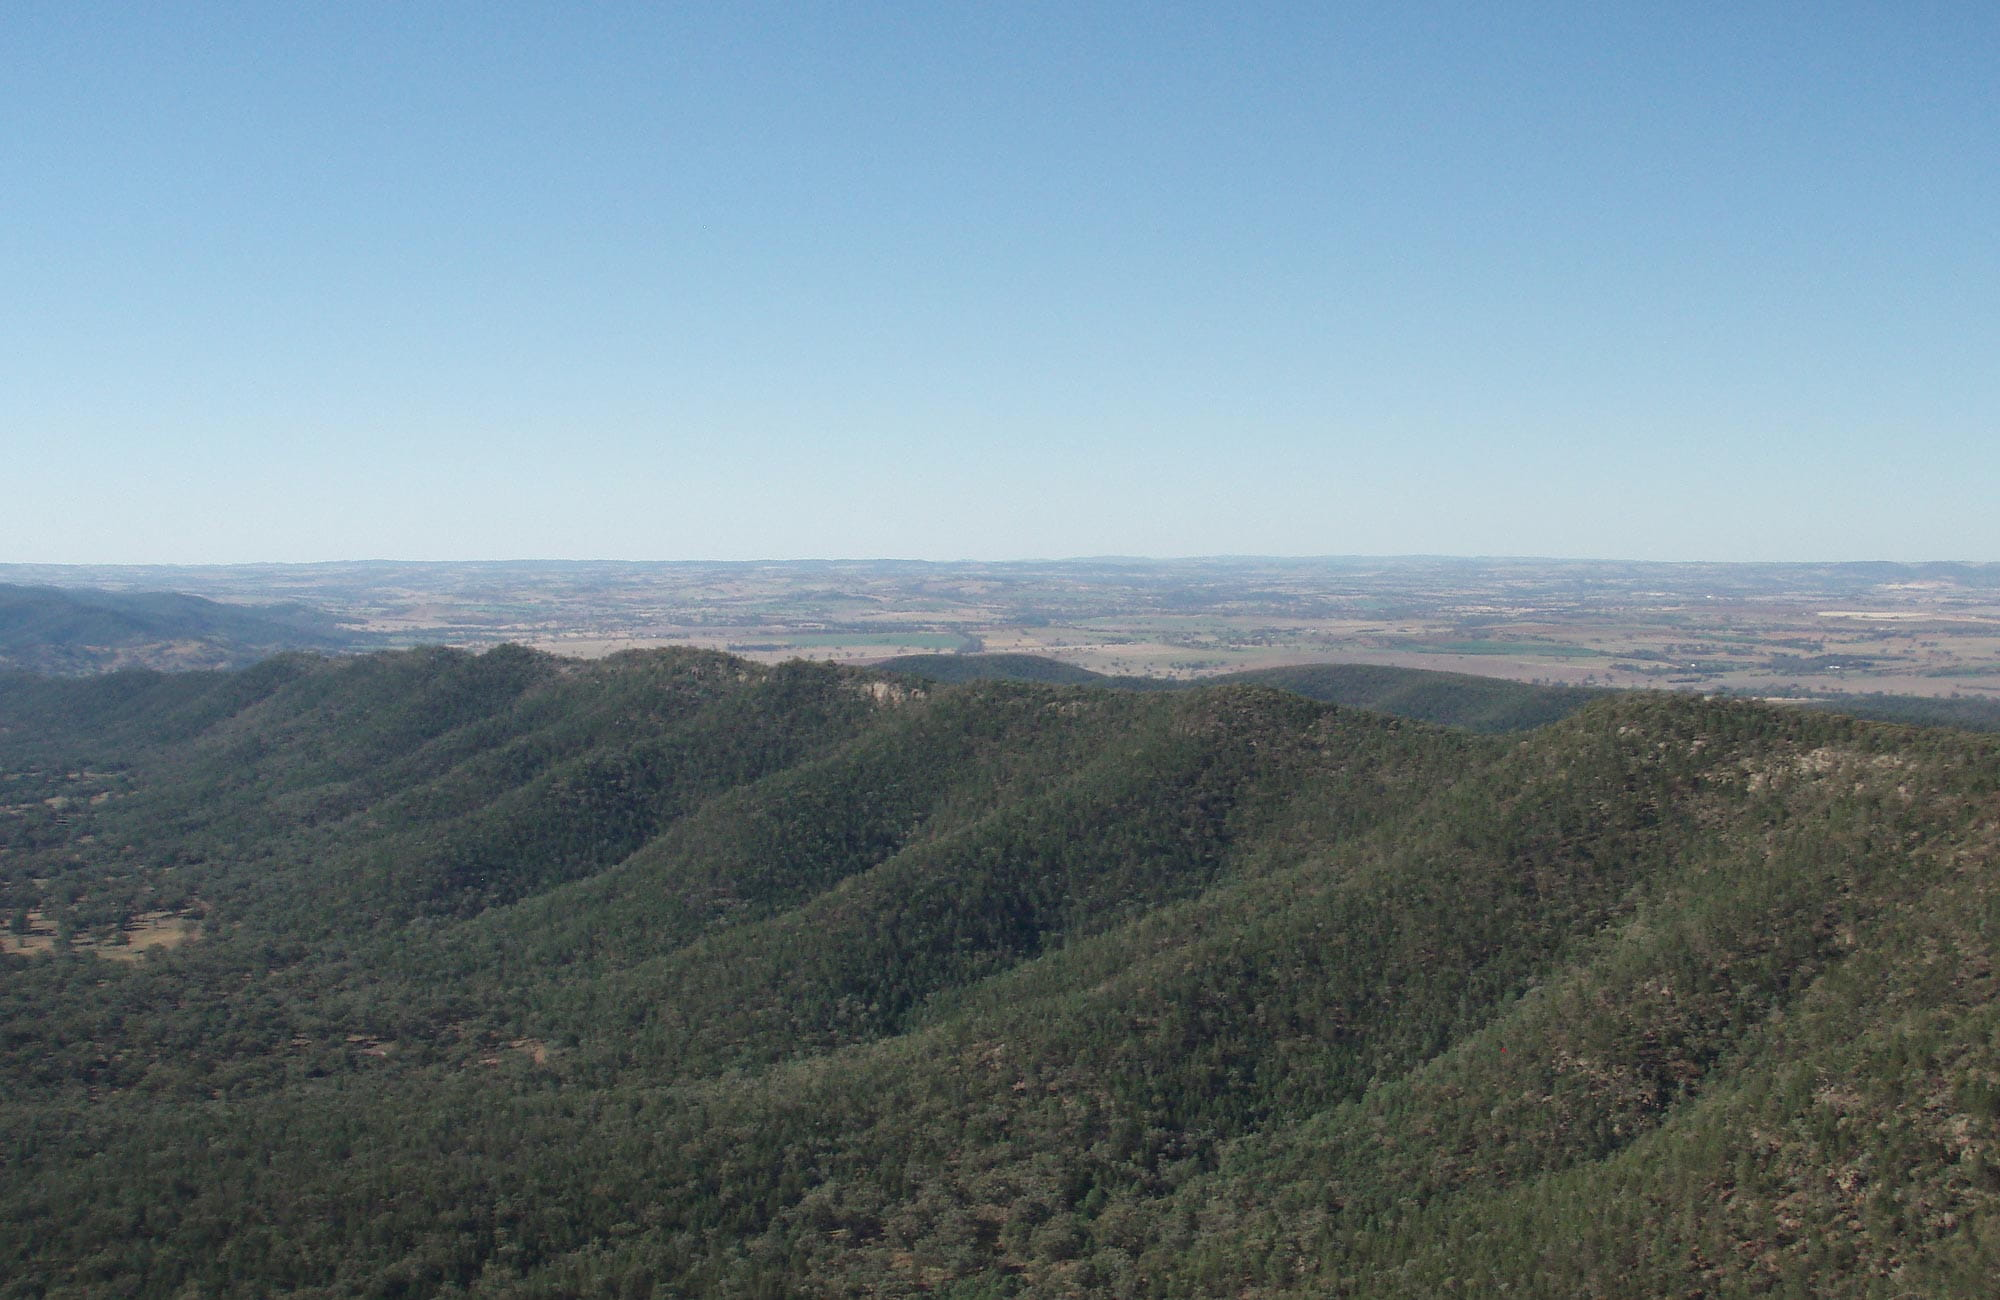 Mt Nangar hiking track, Nangar National Park. Photo: A Lavender/NSW Government